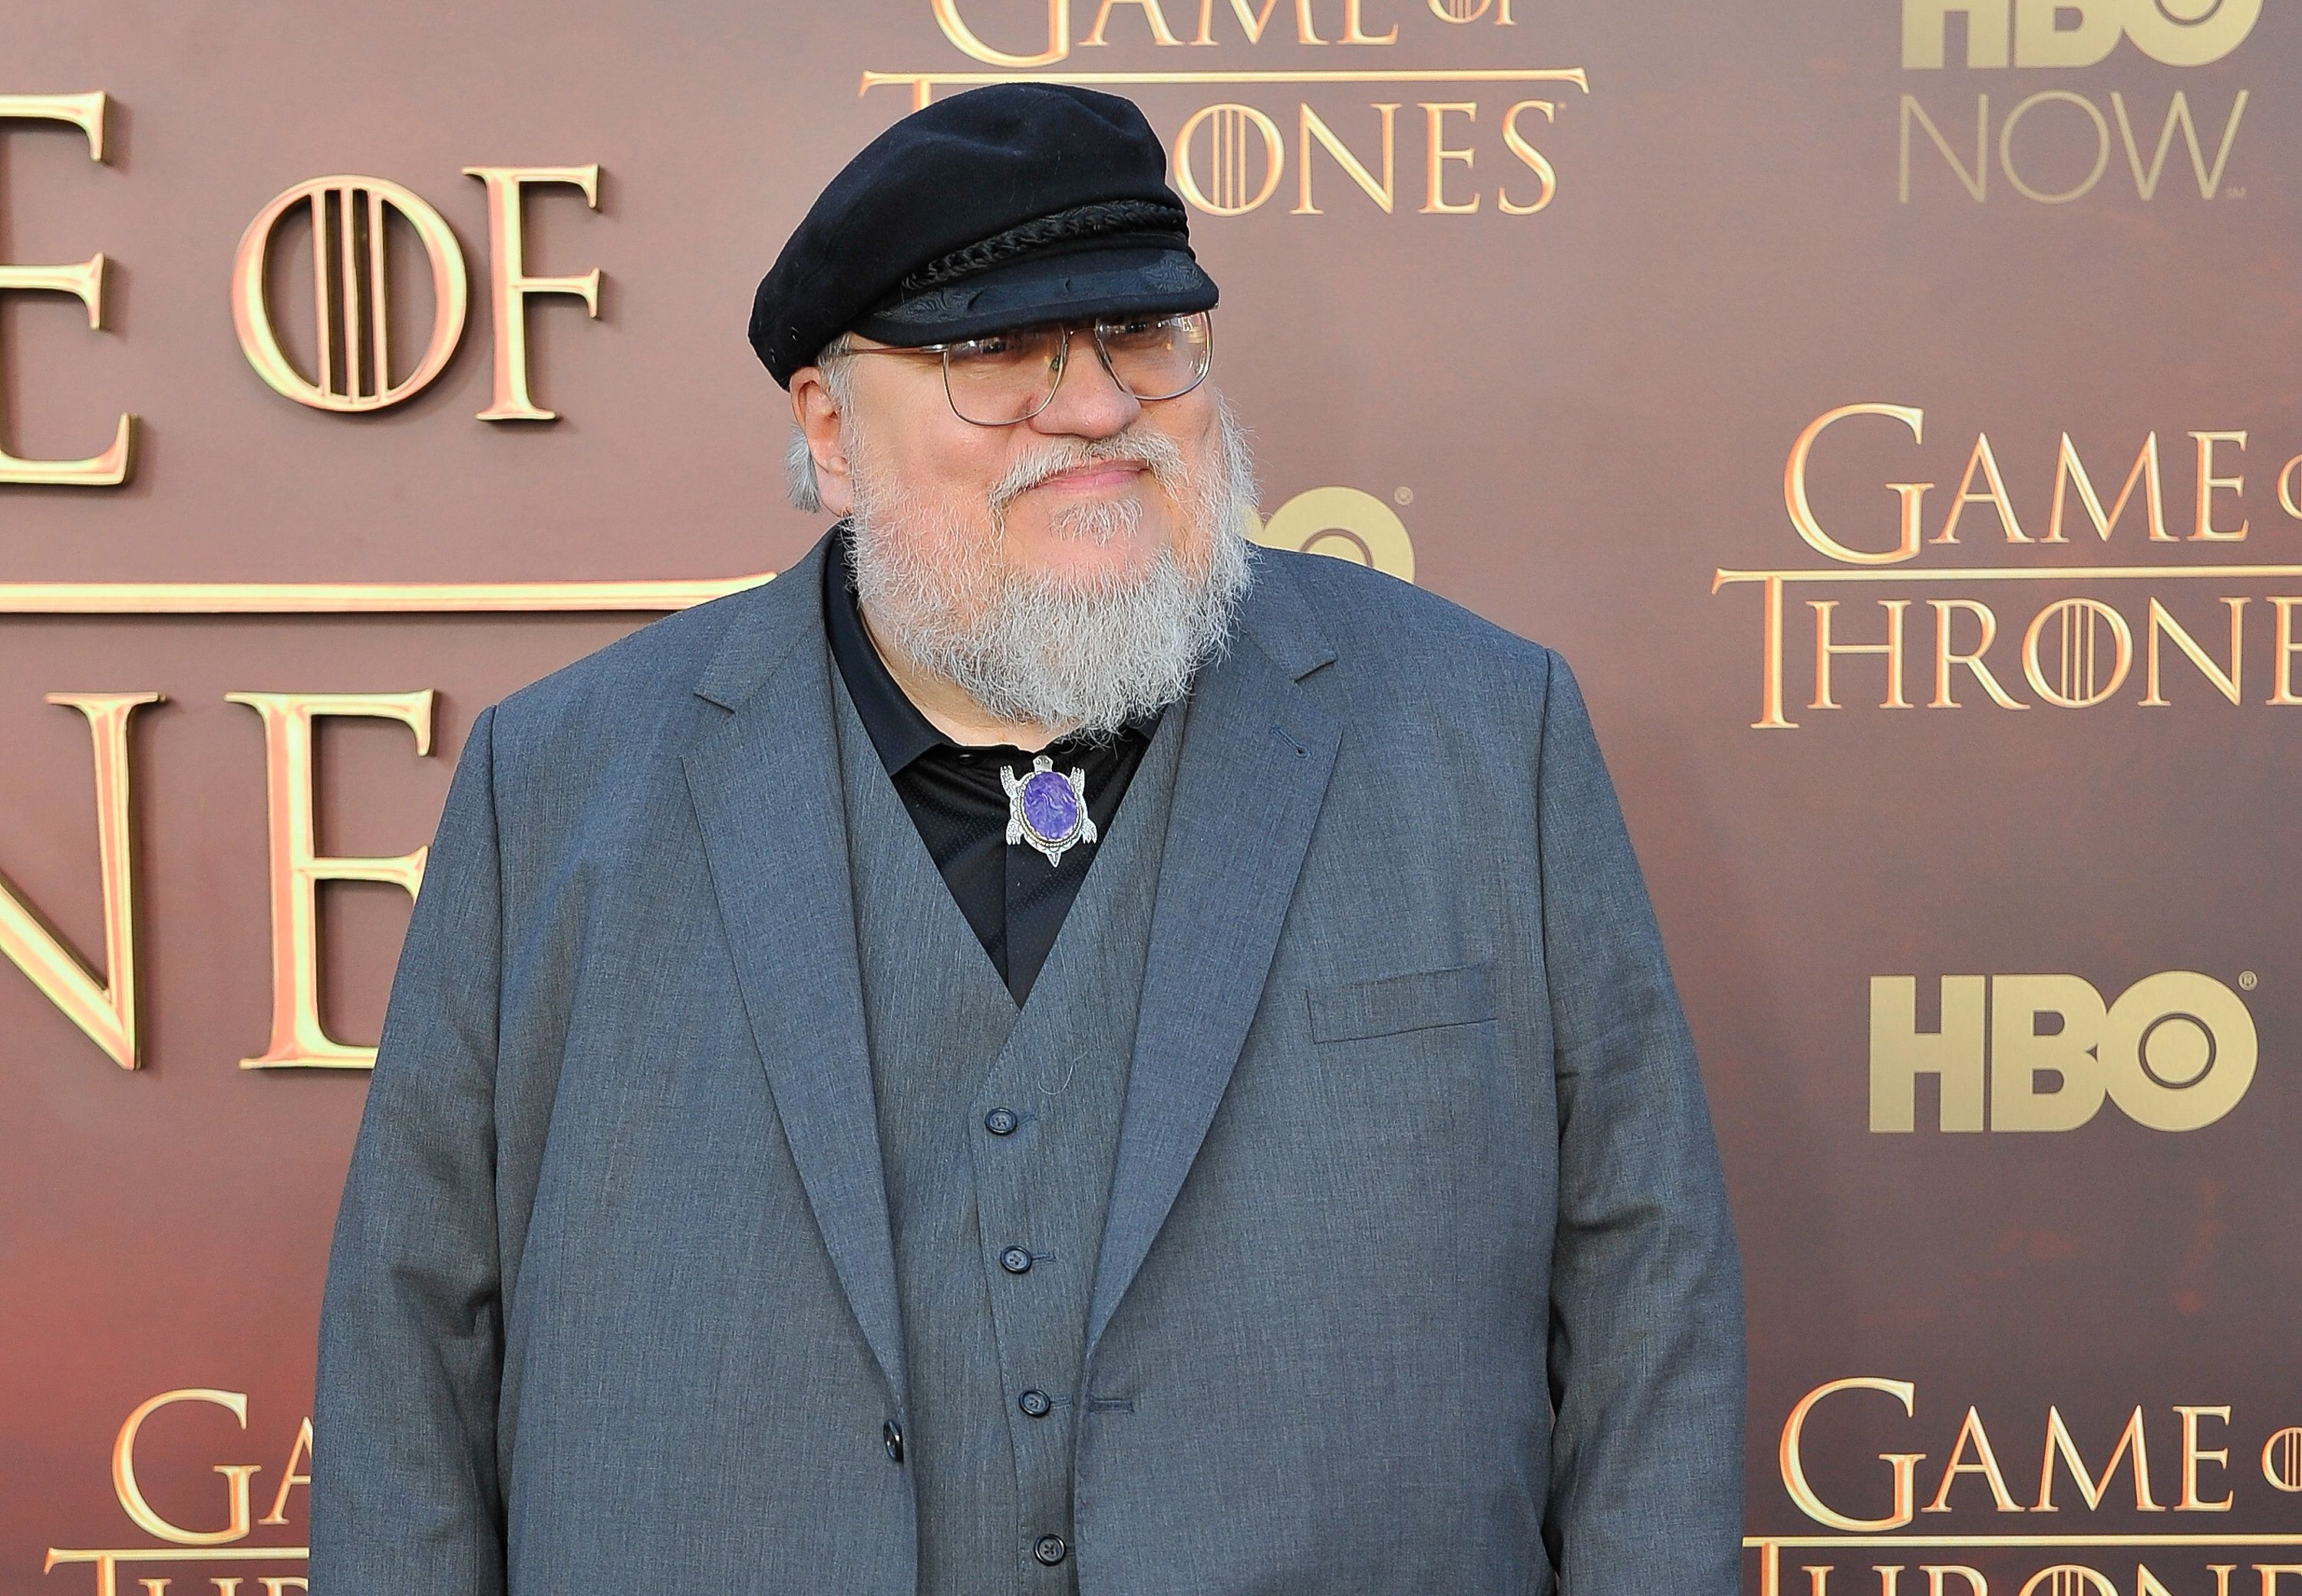 """George R.R. Martin has warned fansthat some book spoilers are coming in""""Game of Thrones""""Season 6."""